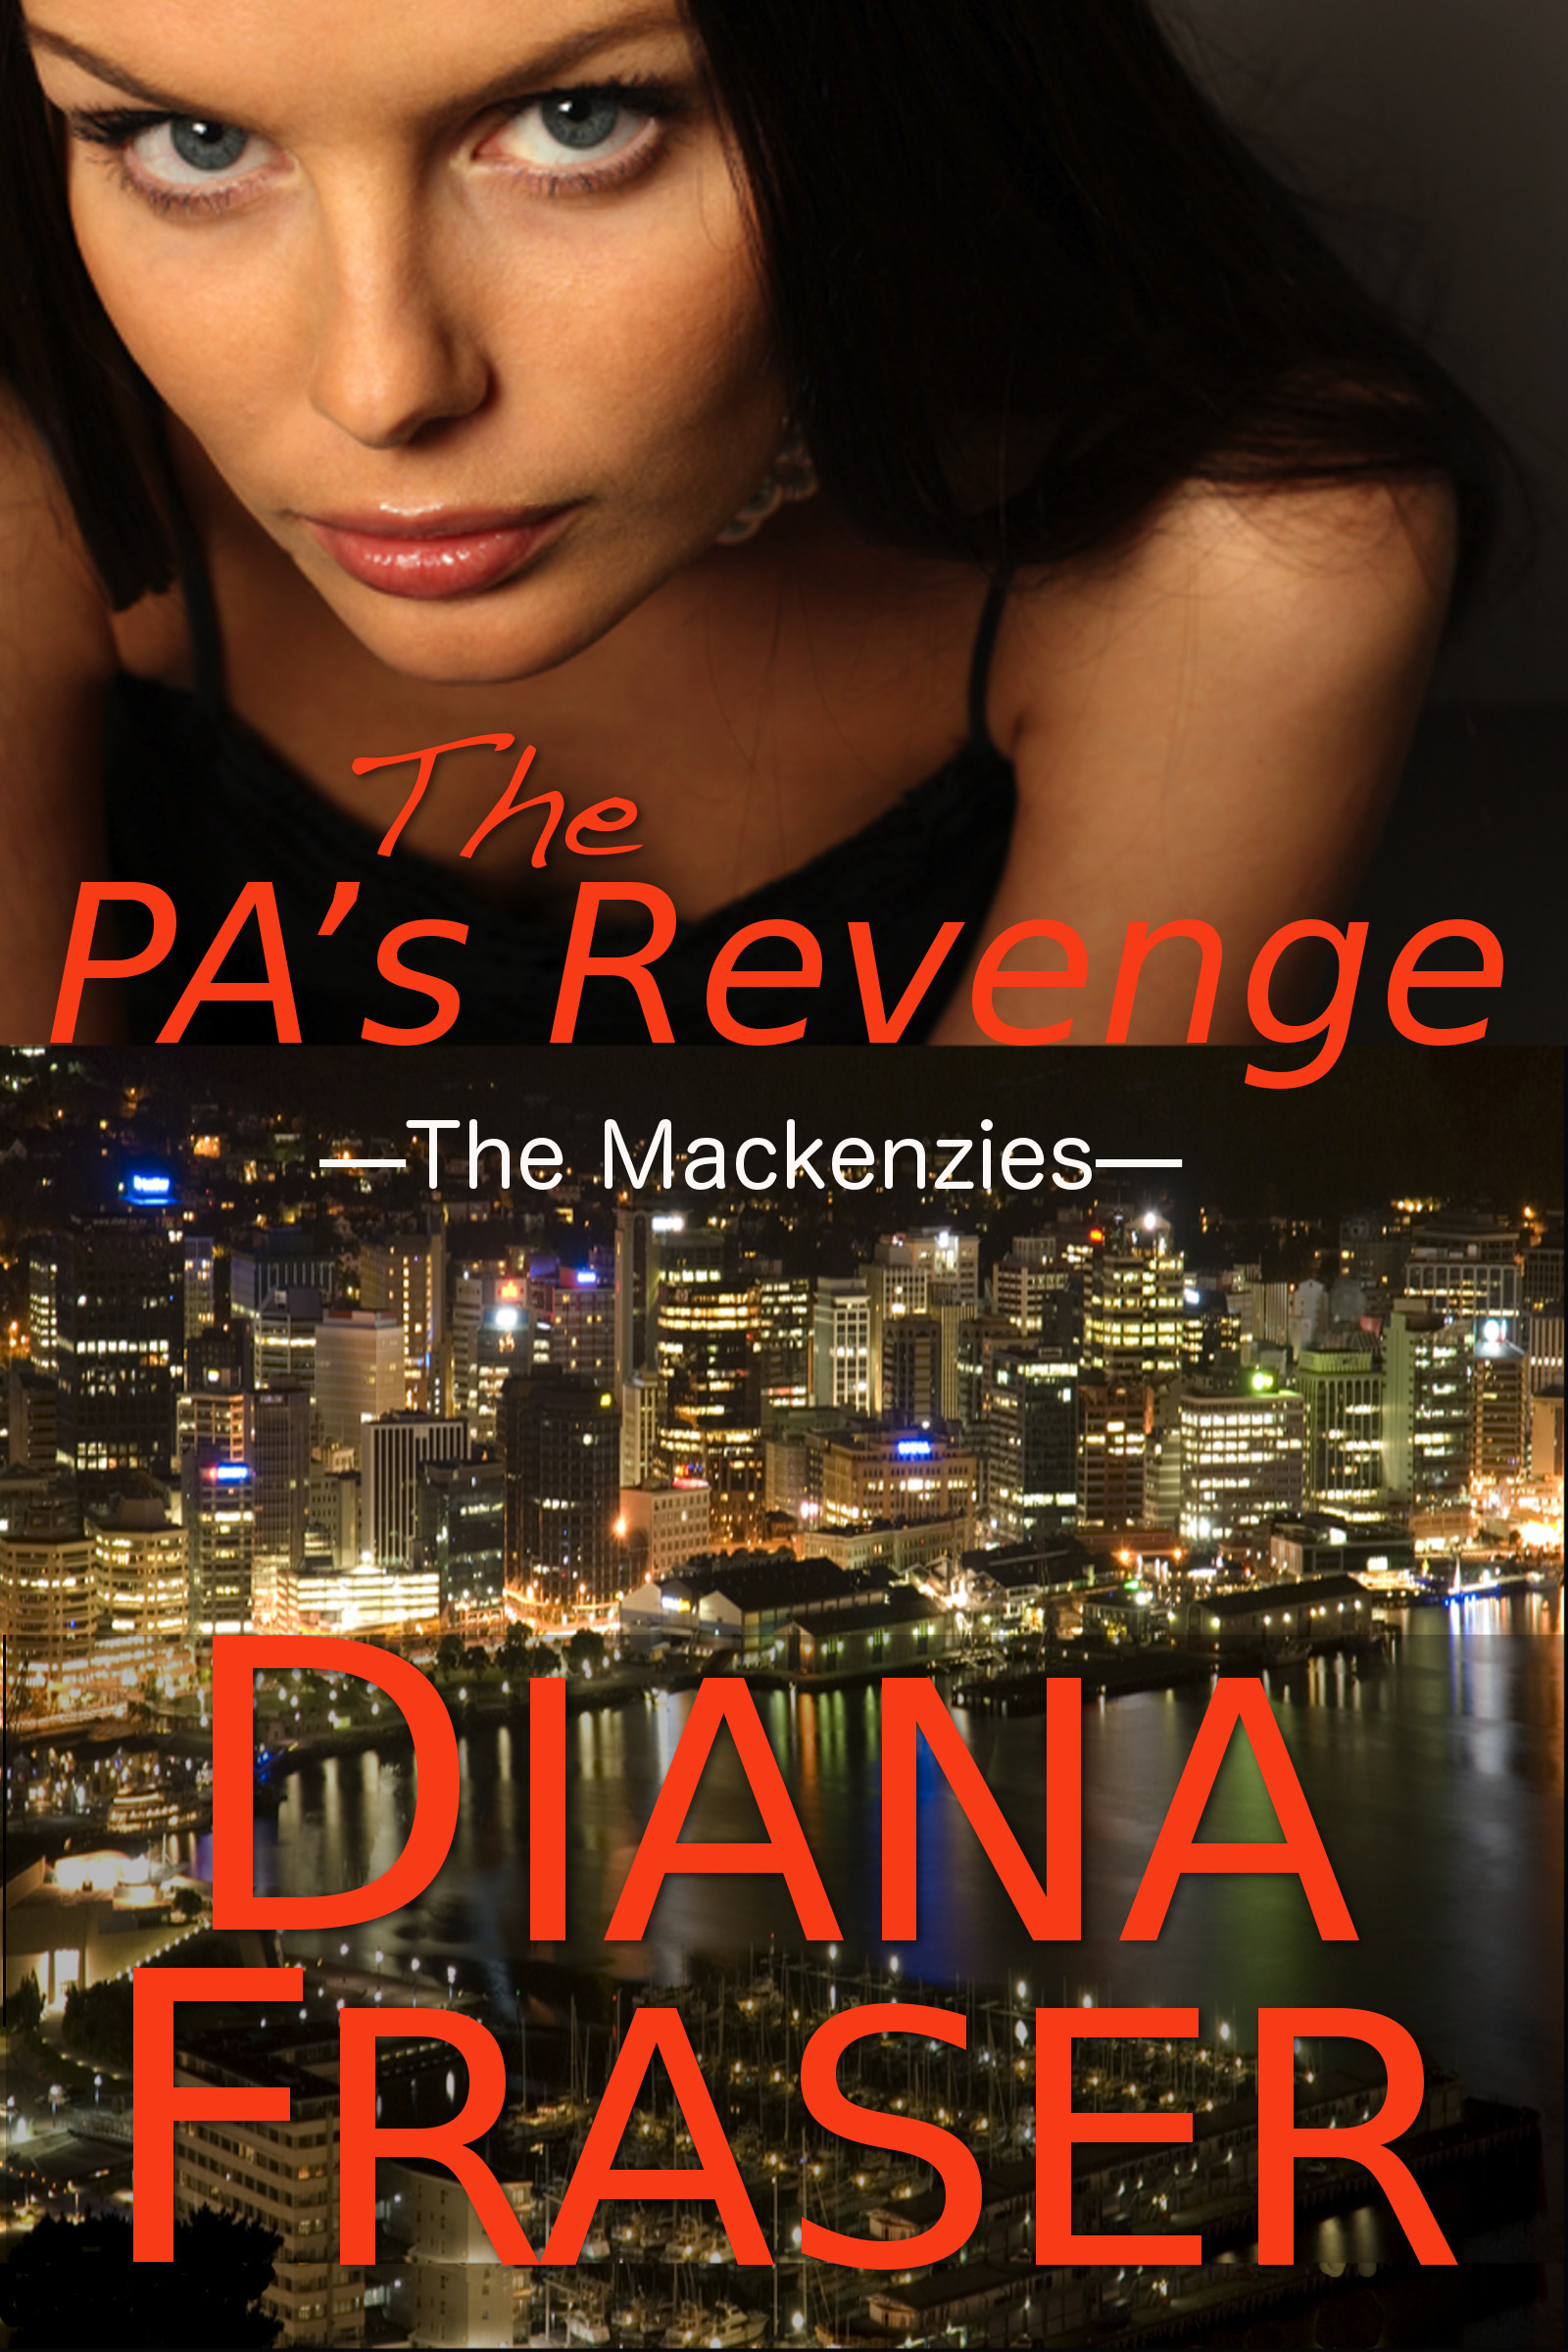 The PA's Revenge (Book 1, The Mackenzies)